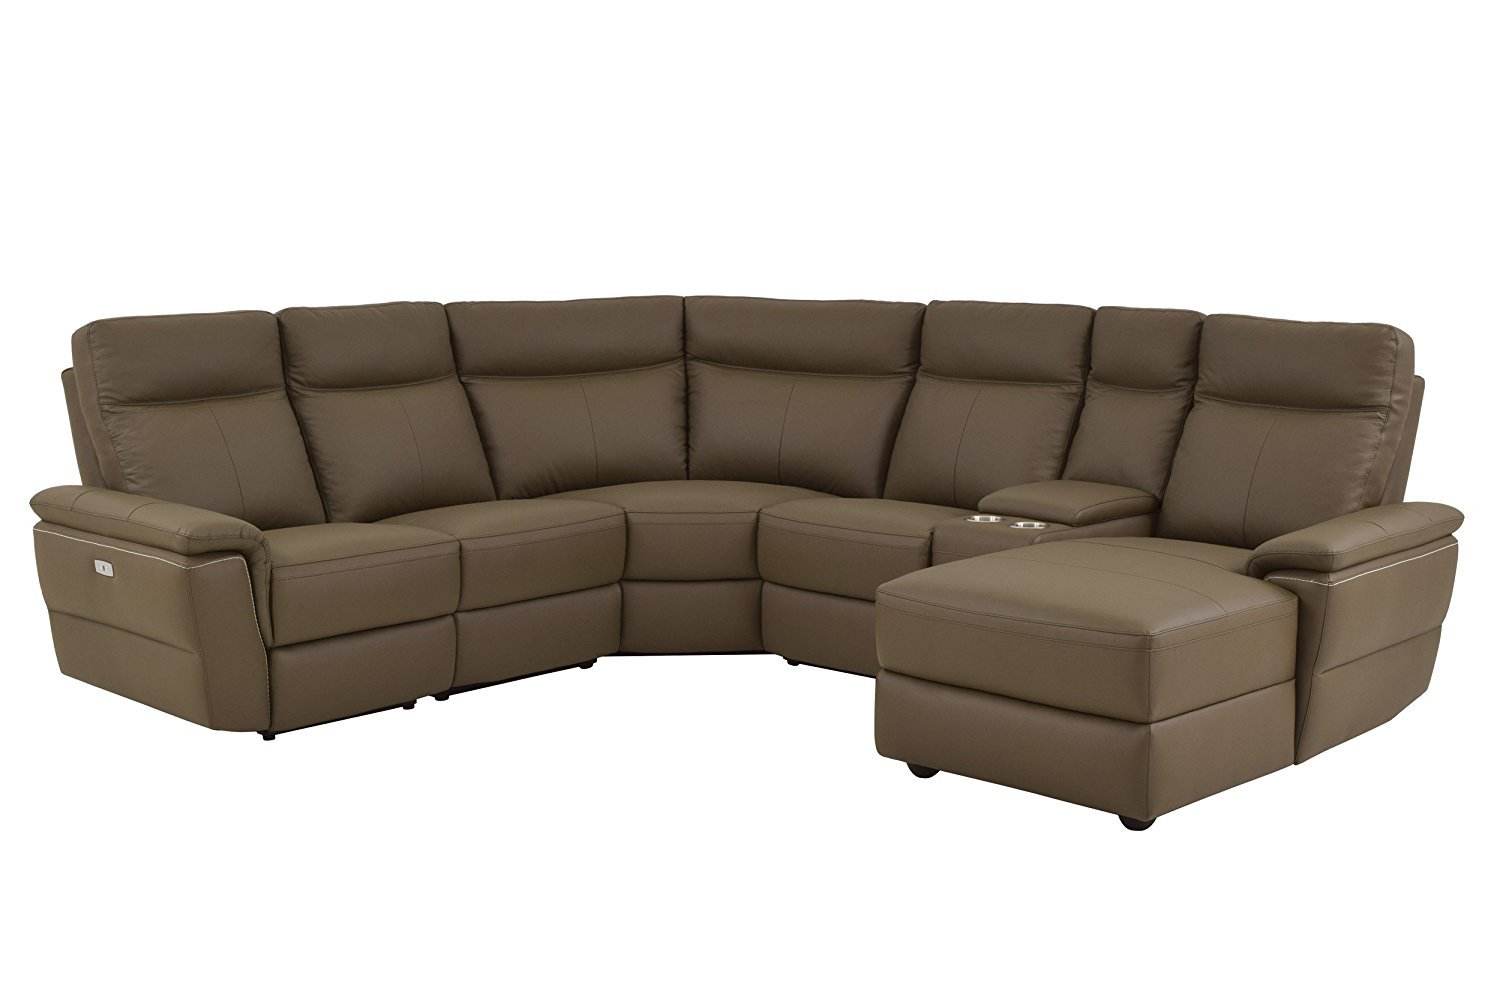 homelegance olympia 6 piece power reclining sectional sofa 2